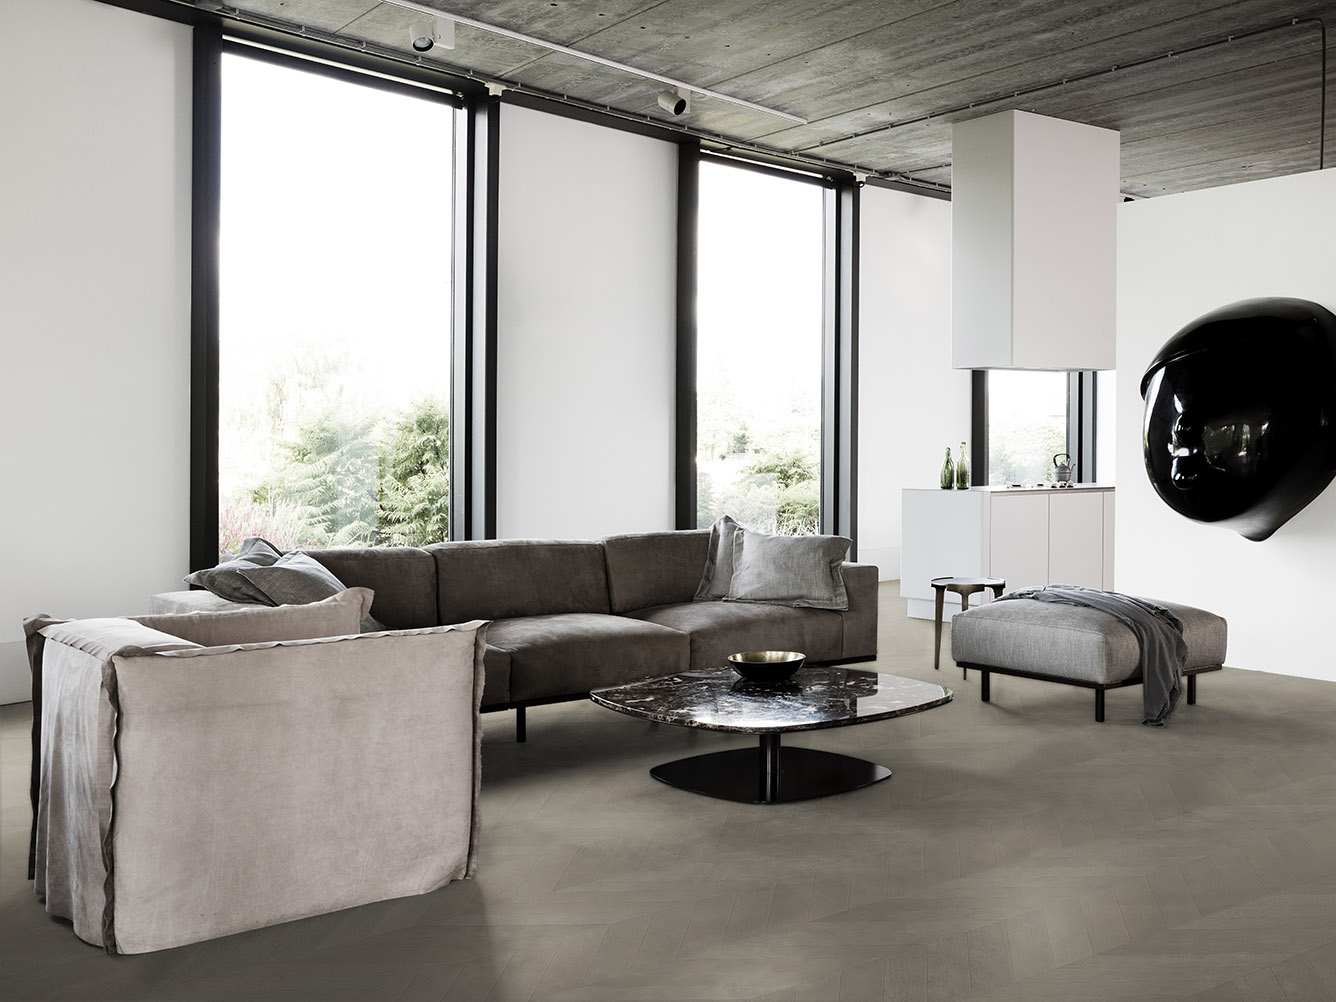 Flooring by Solidfloor, DON sofa, FEDDE armchair and pouf and KEK coffee table at kitchen showroom